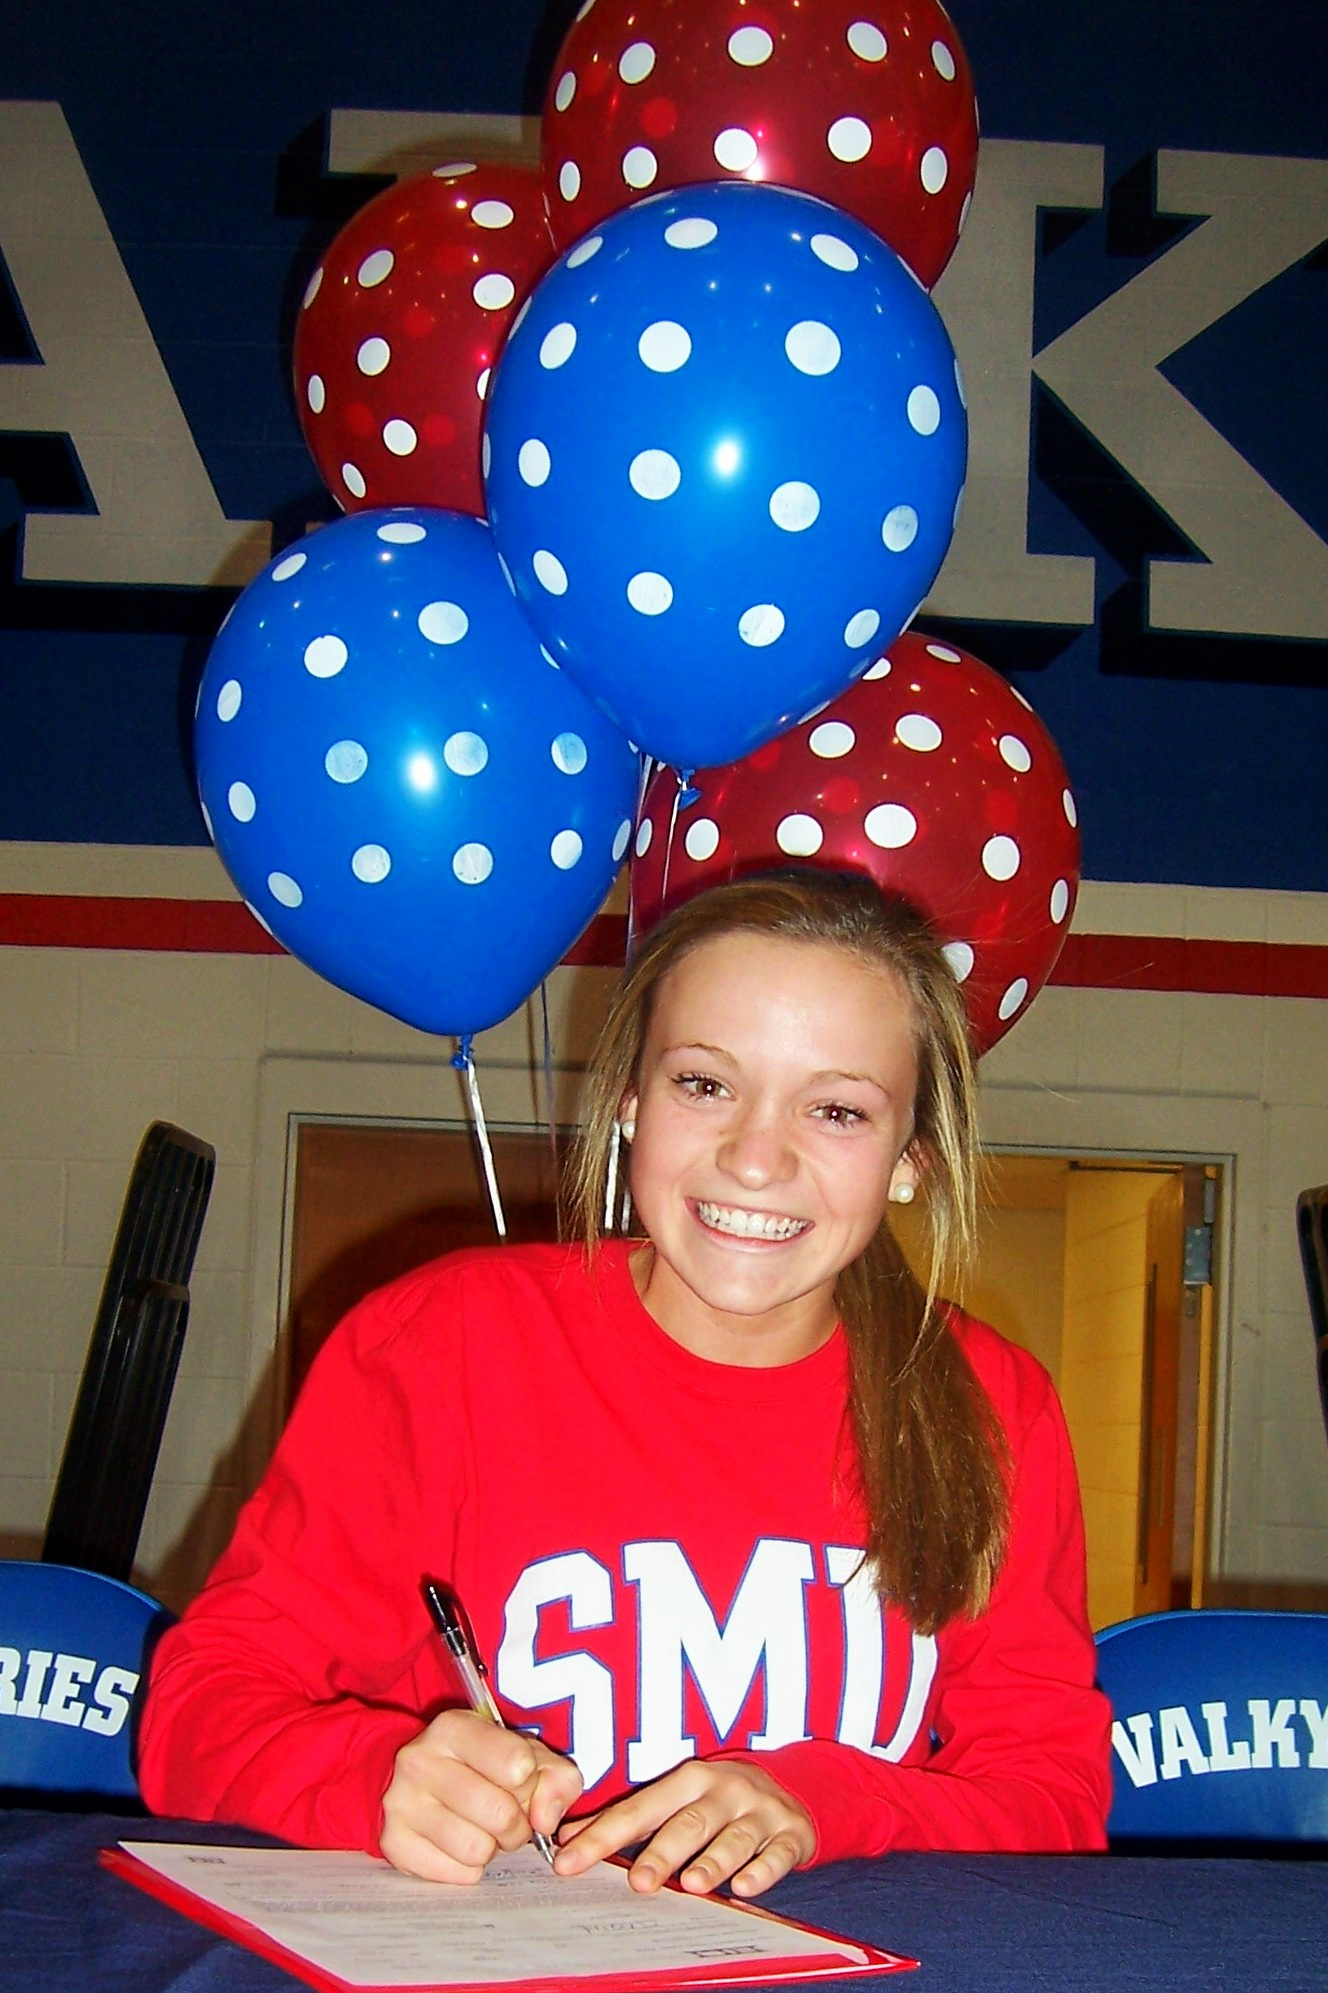 Katie Page signs with SMU